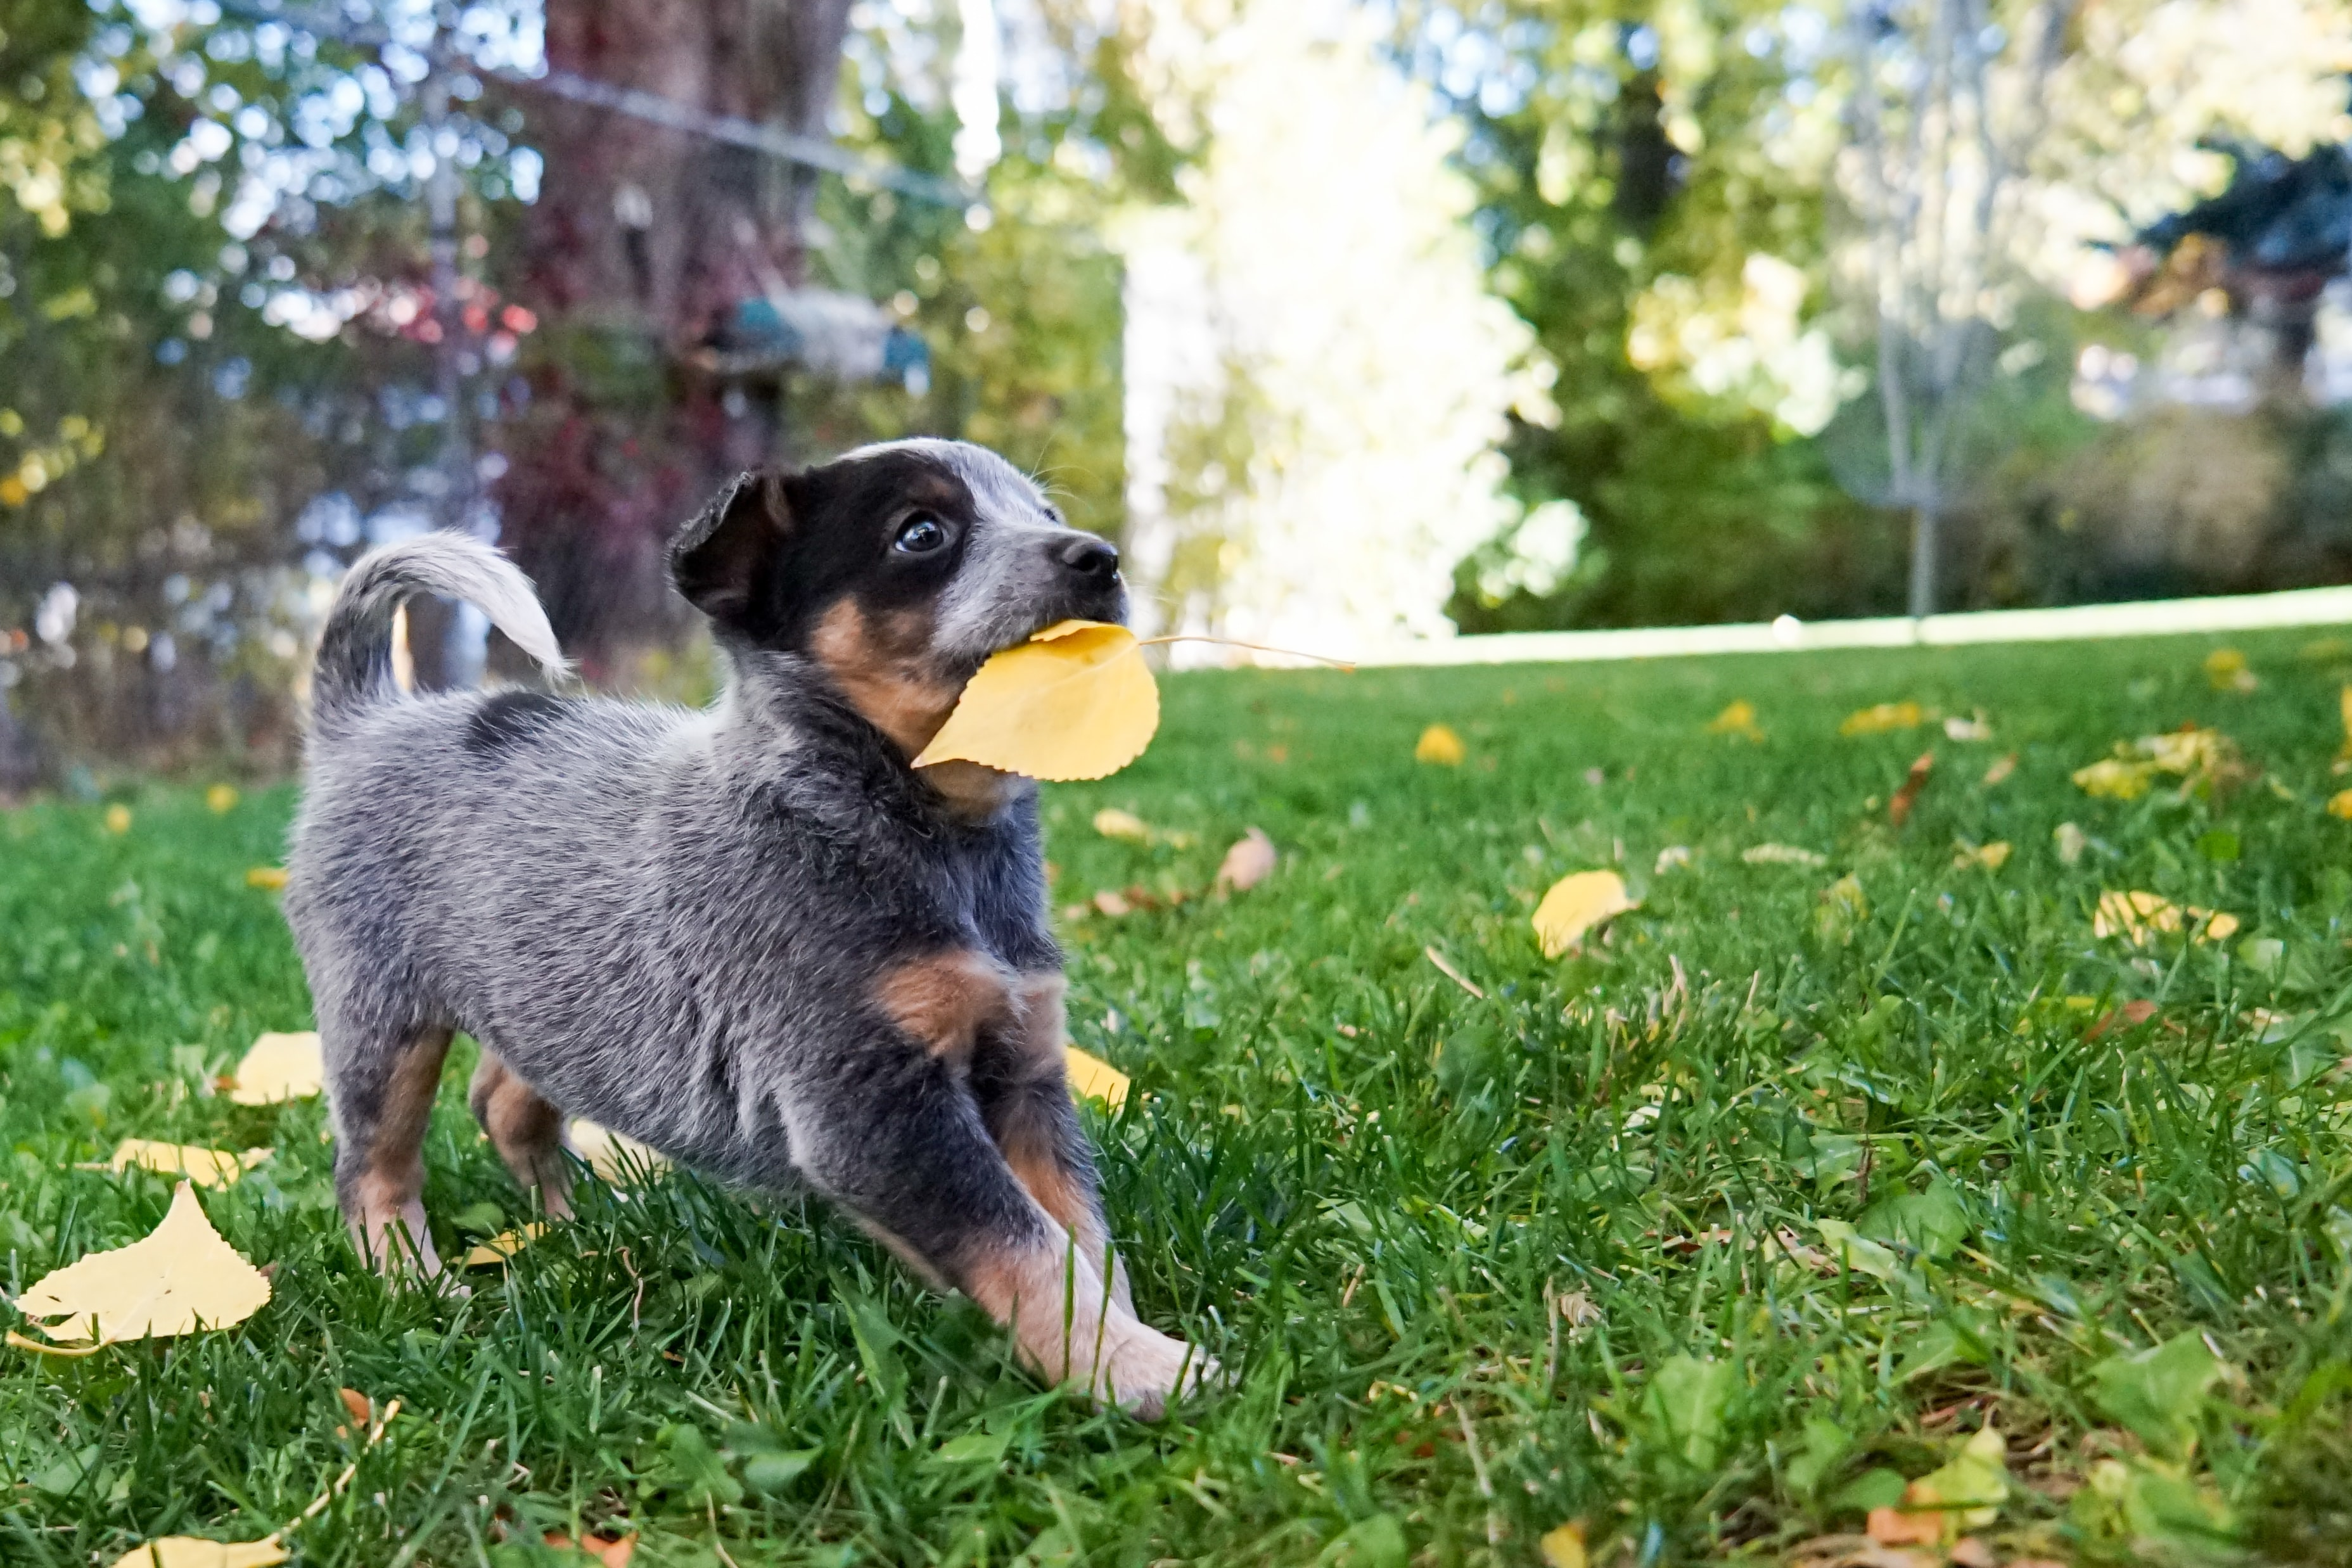 Adorable puppy plays with a leaf in the grass